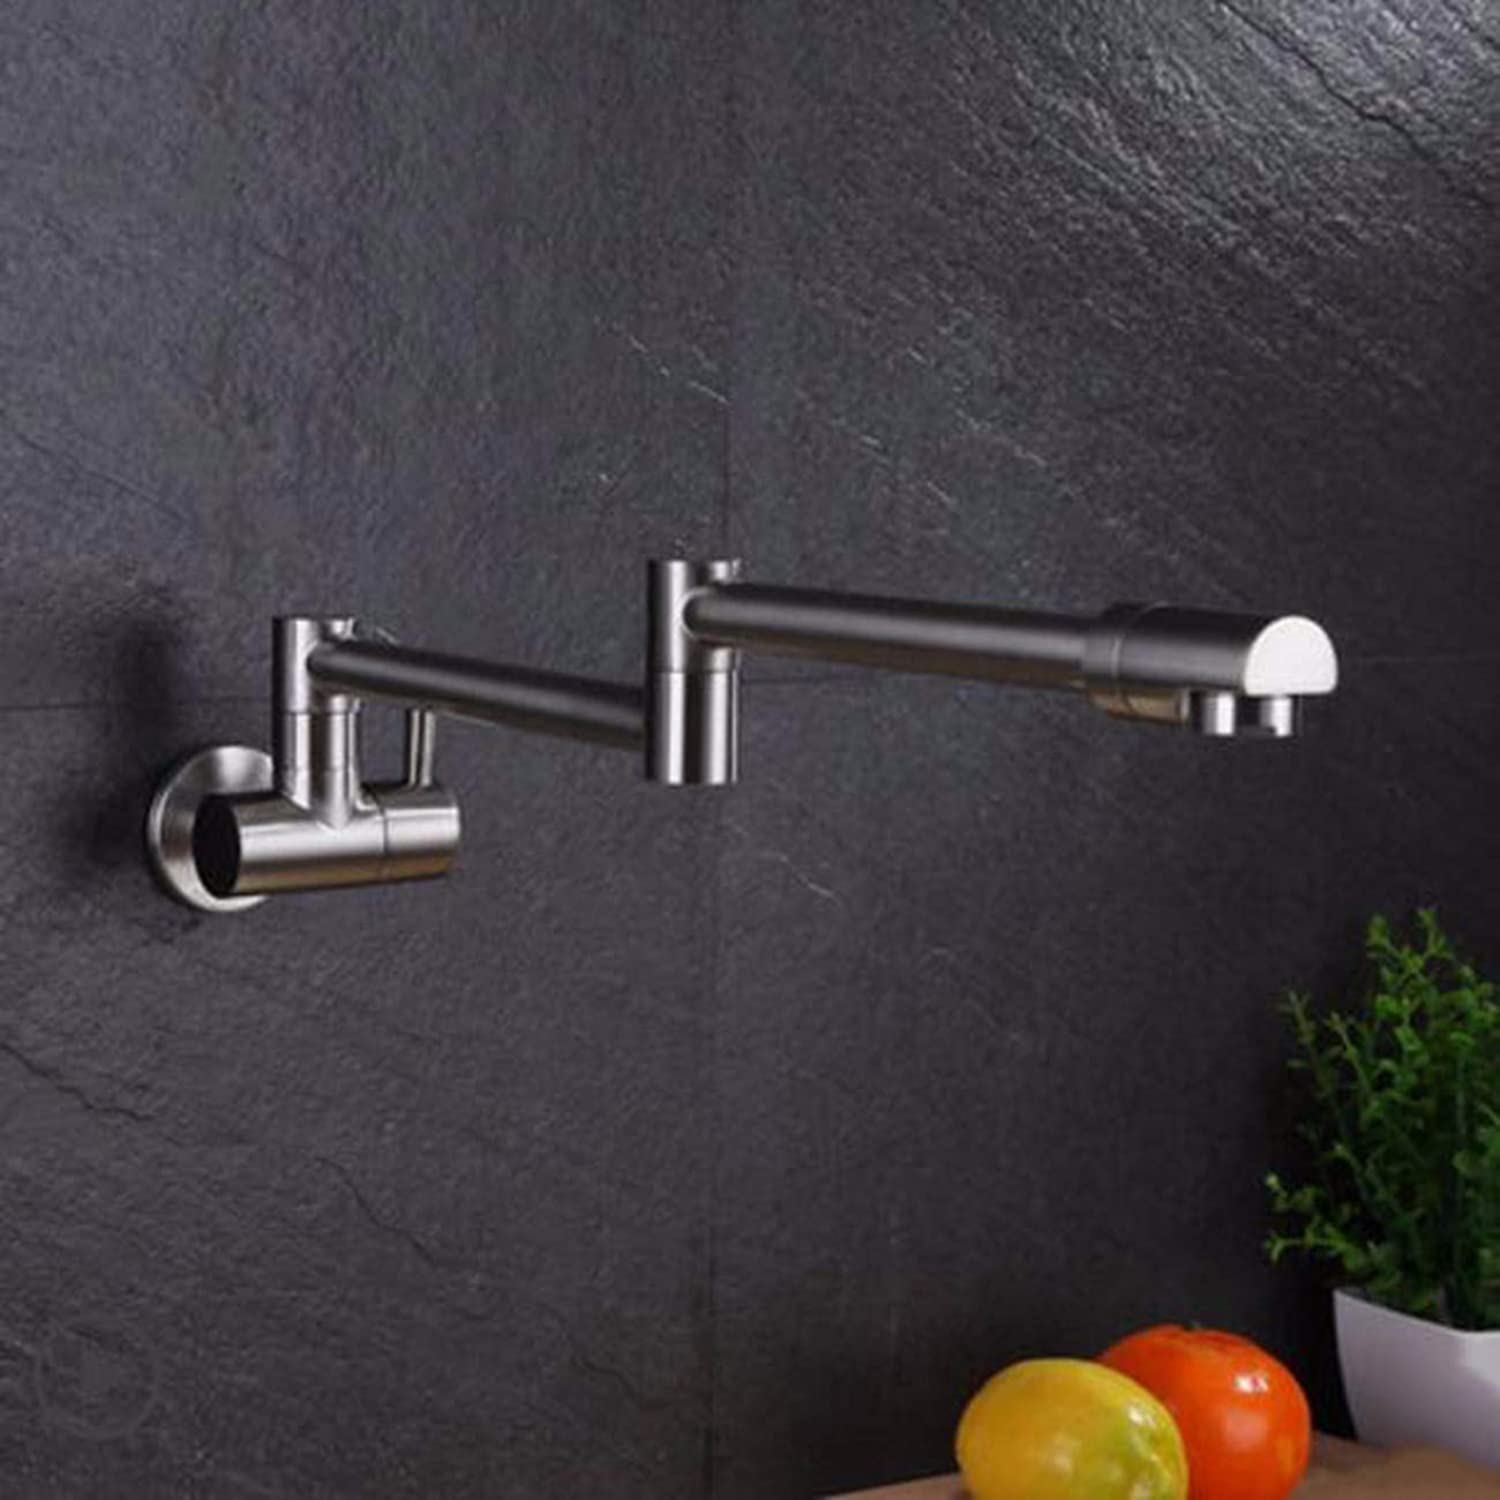 Faucet All copper black into wall folding single cold kitchen faucet washing basin balcony telescopic redary faucet,B